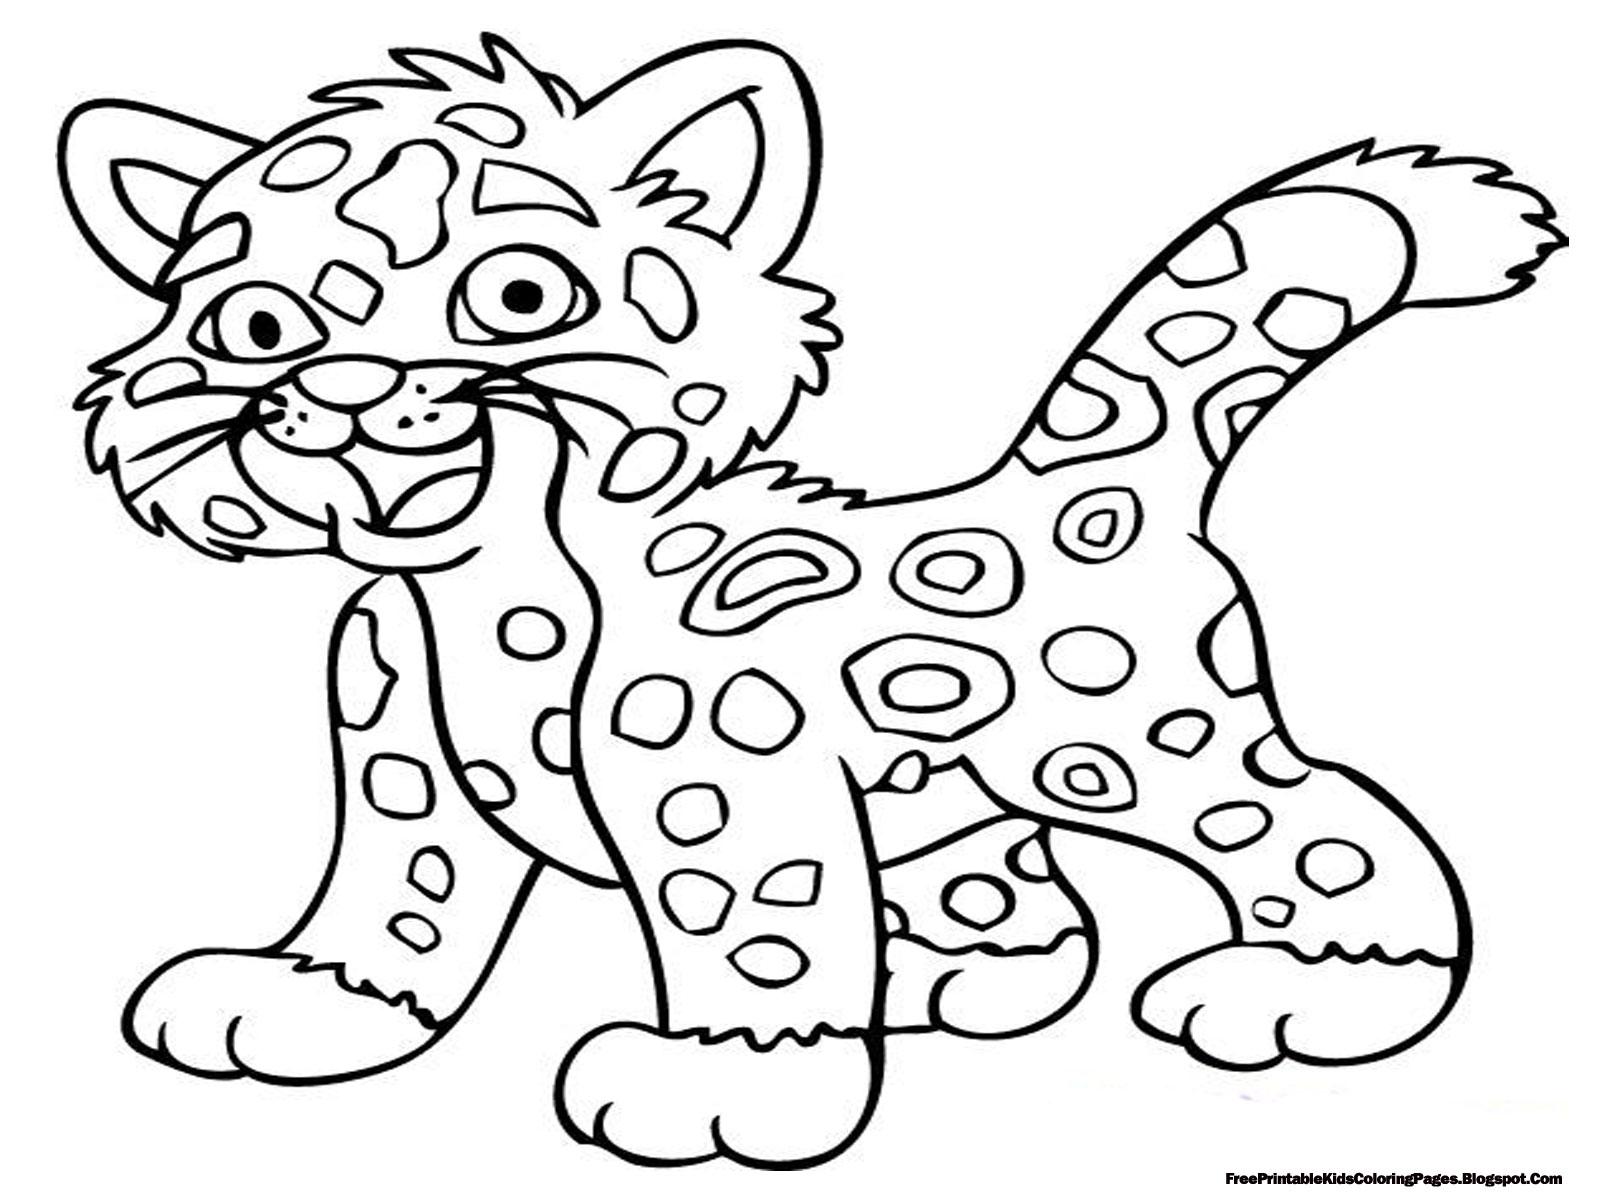 1600x1200 Jaguar Coloring Page